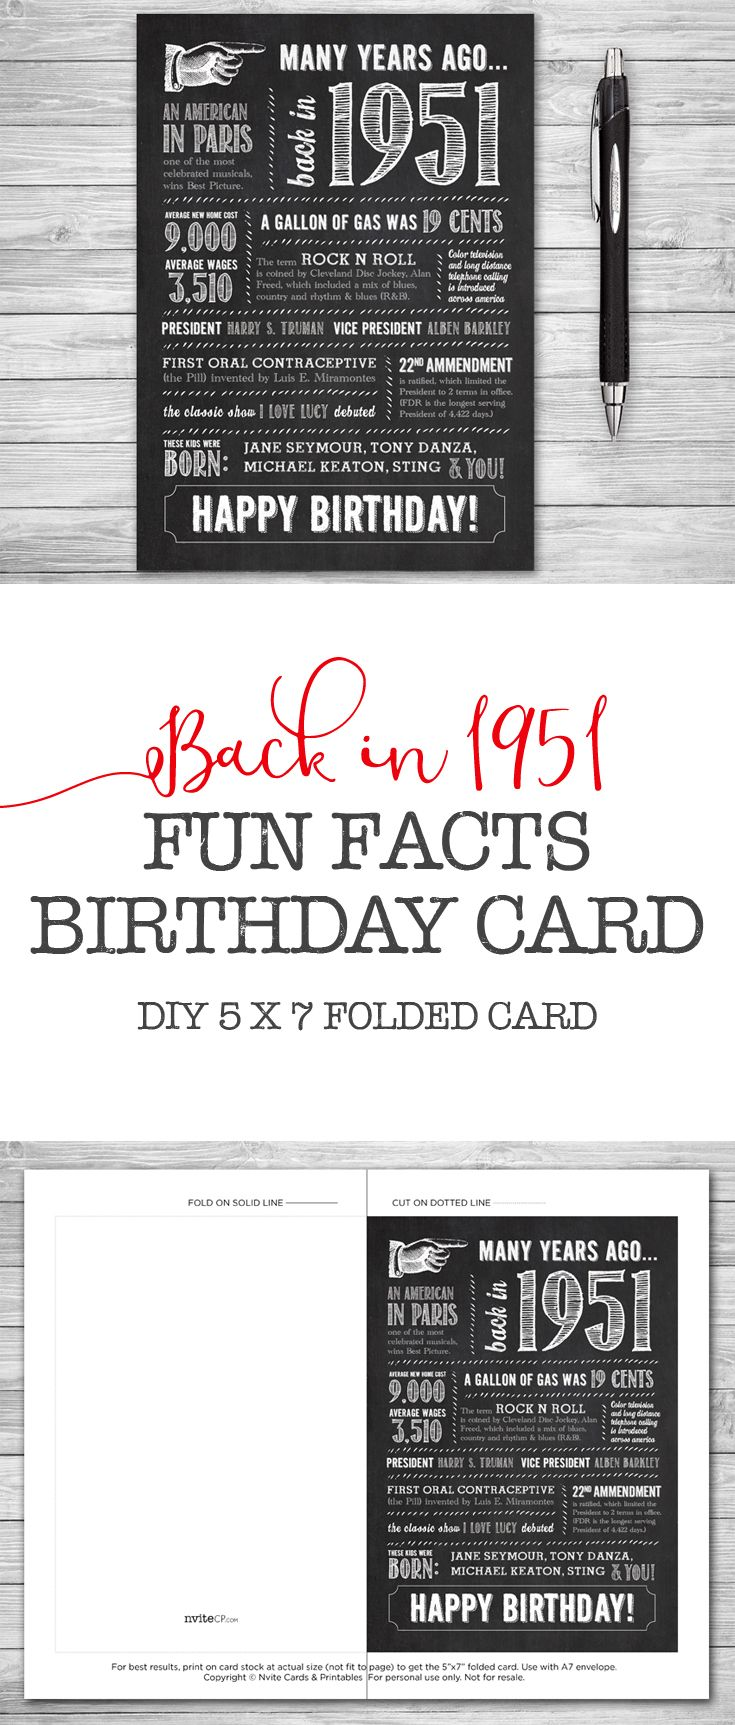 66th Birthday, Printable Card, 5x7 Folded, Many Years Ago Back in ...